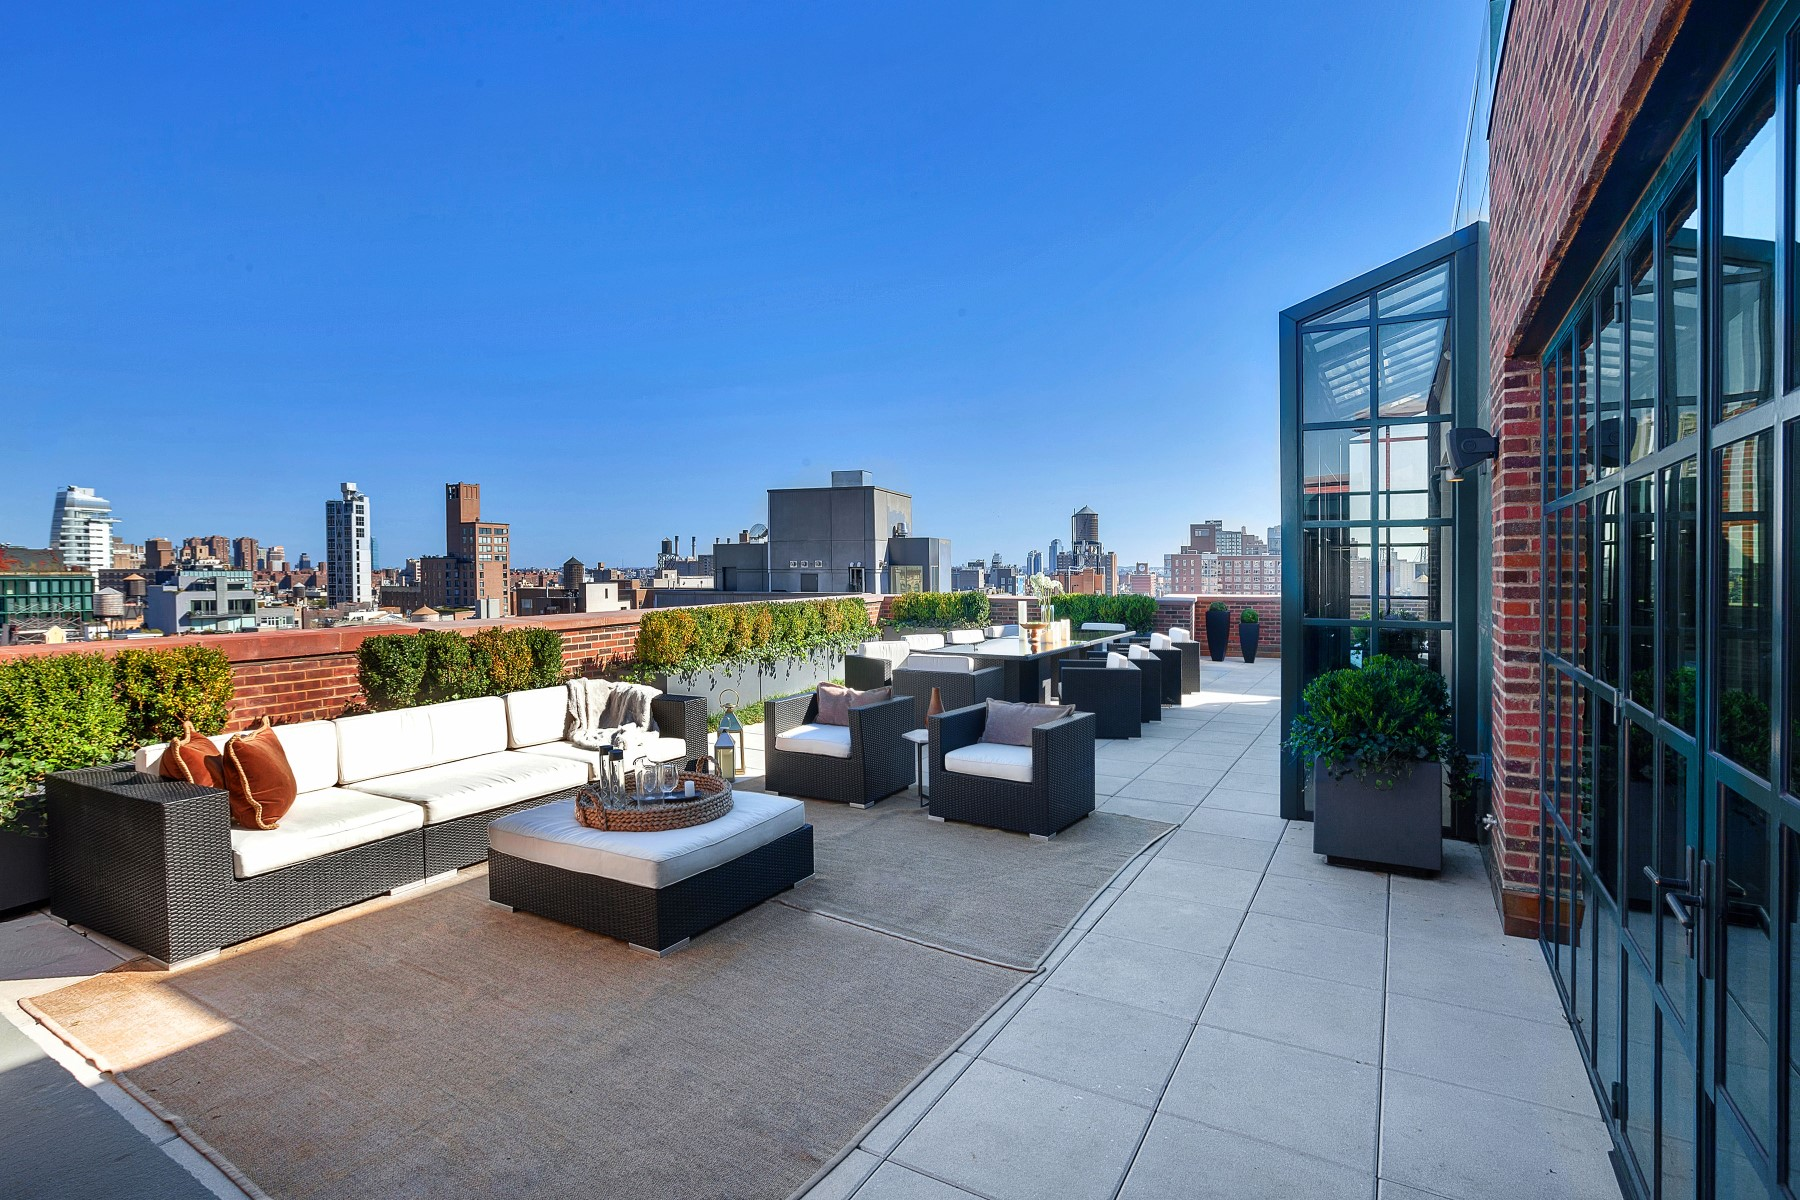 Bedroom Suites For Sale Stunning 66 Million Penthouse For Sale In New York City